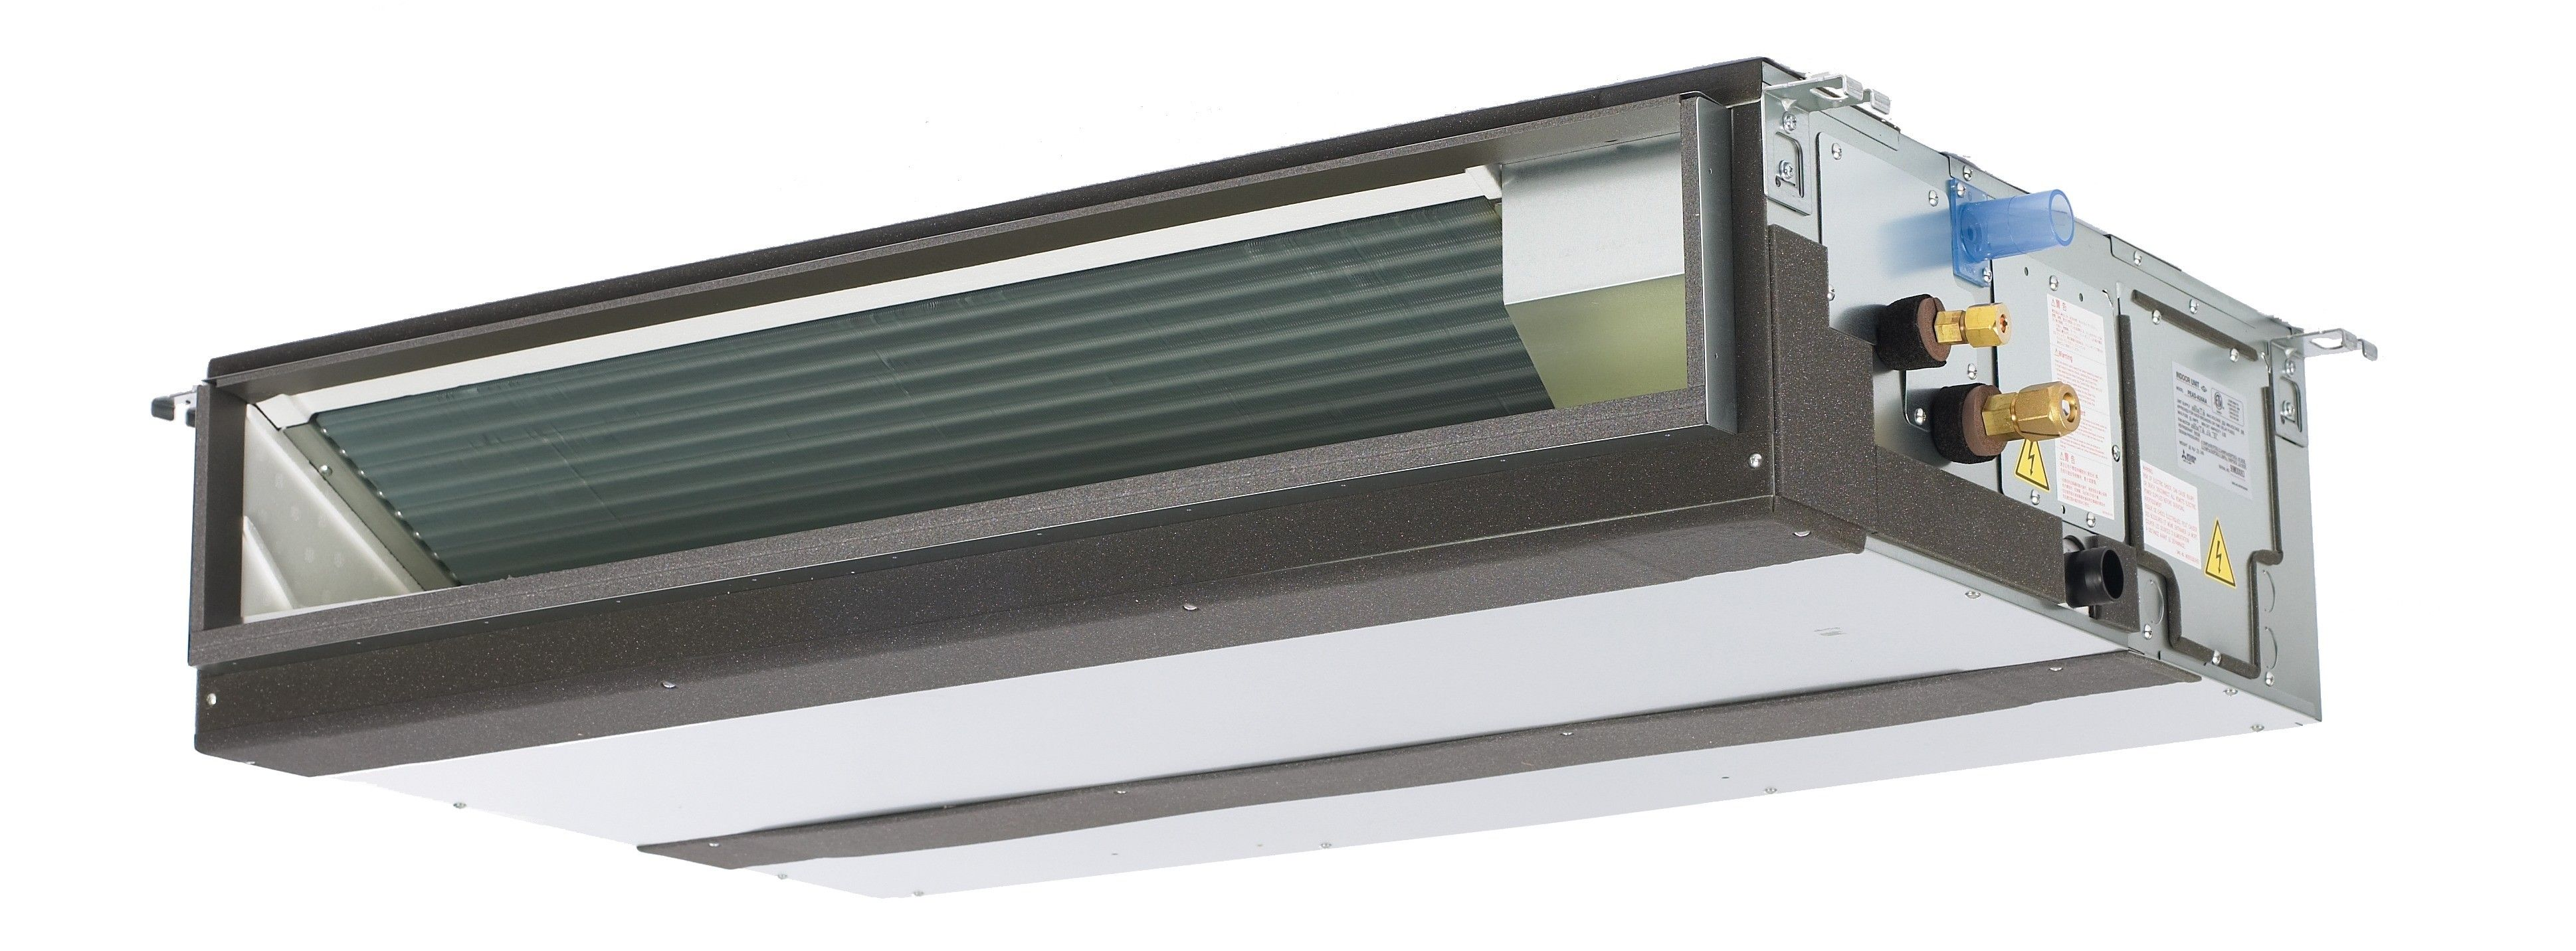 30k Btu Mitsubishi Pead Horizontal Ducted Indoor Unit In